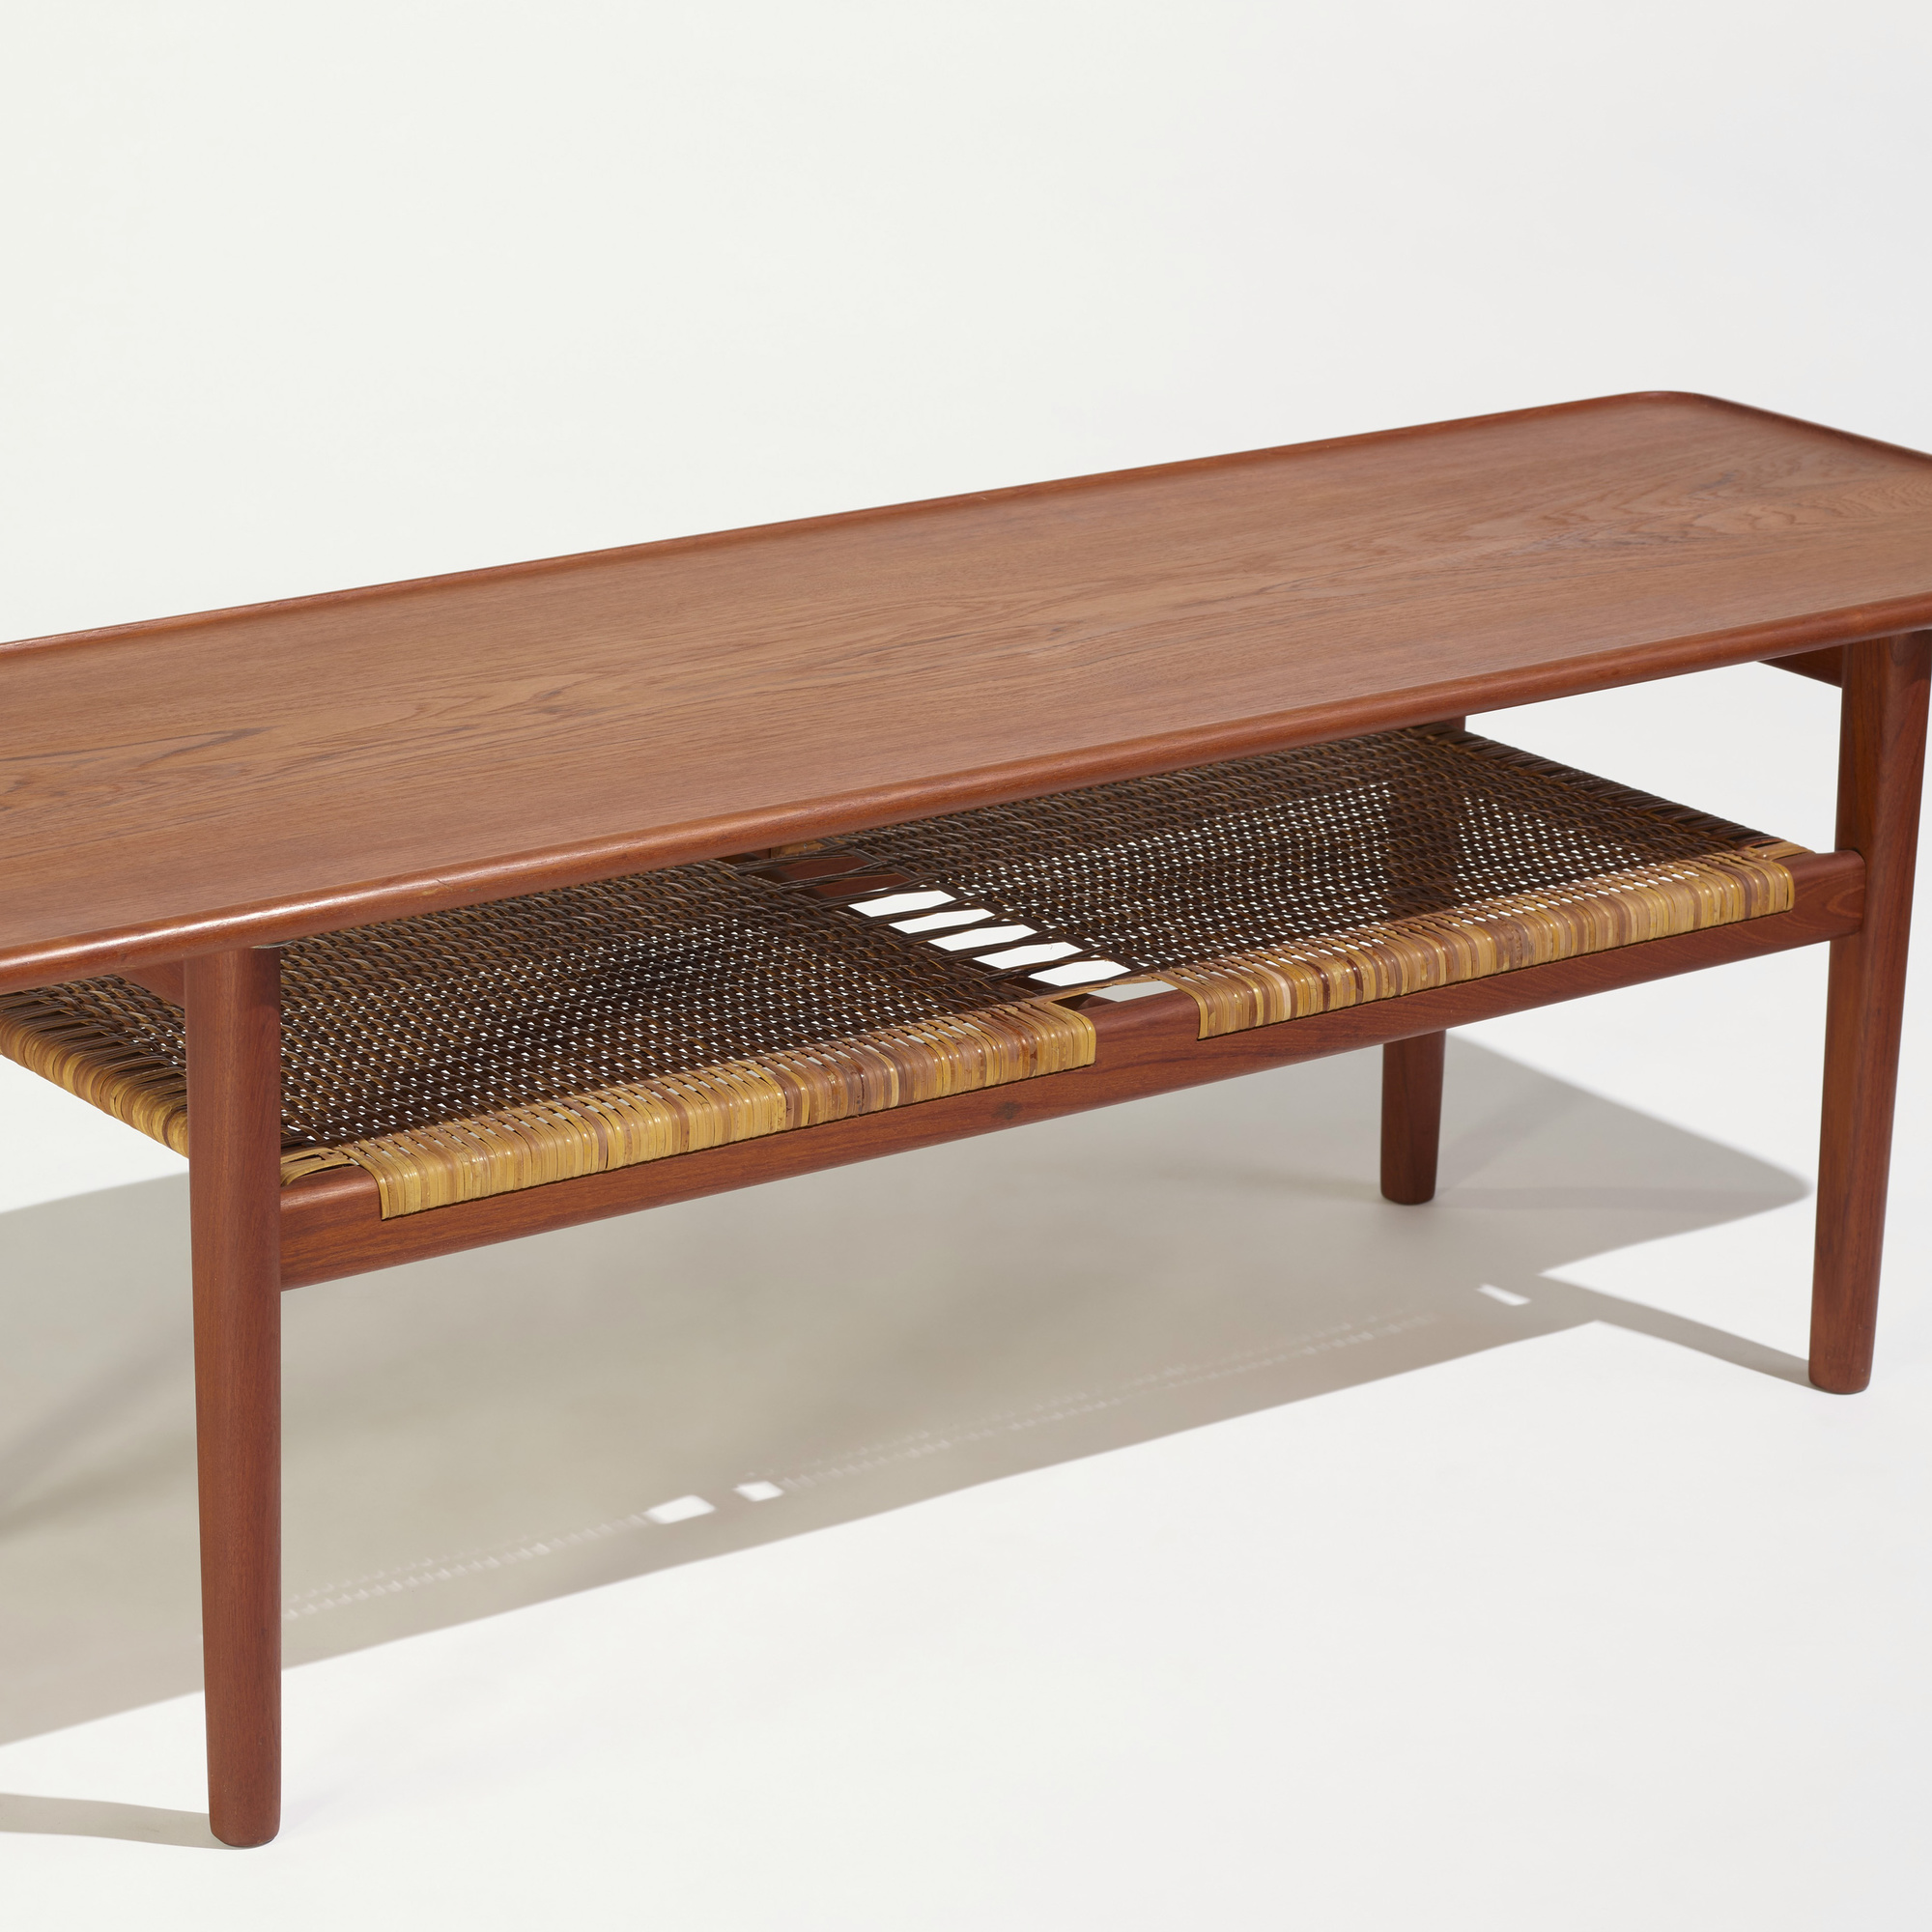 278: Hans J. Wegner / coffee table, model AT 10 (2 of 3)